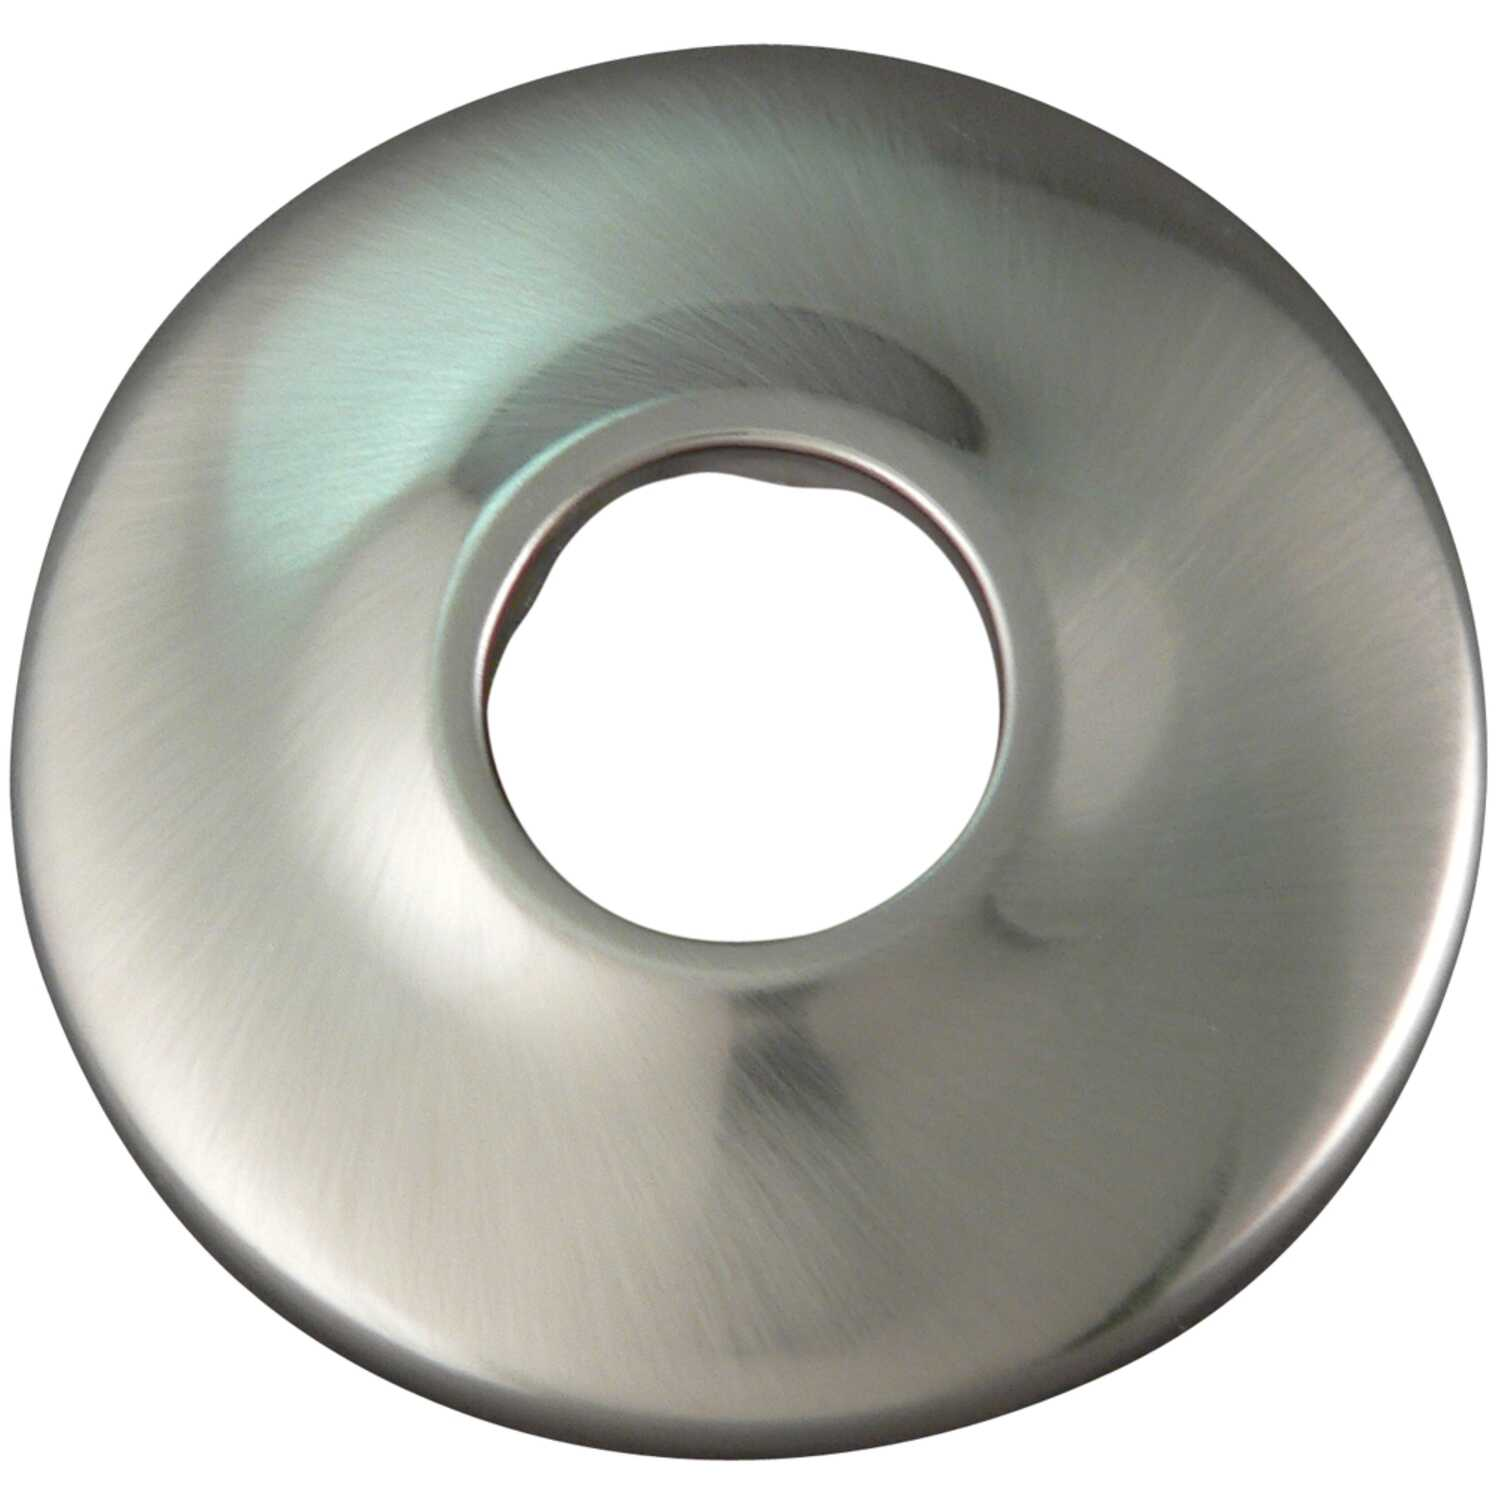 Keeney  1/2 in. Shallow Flange  Metal